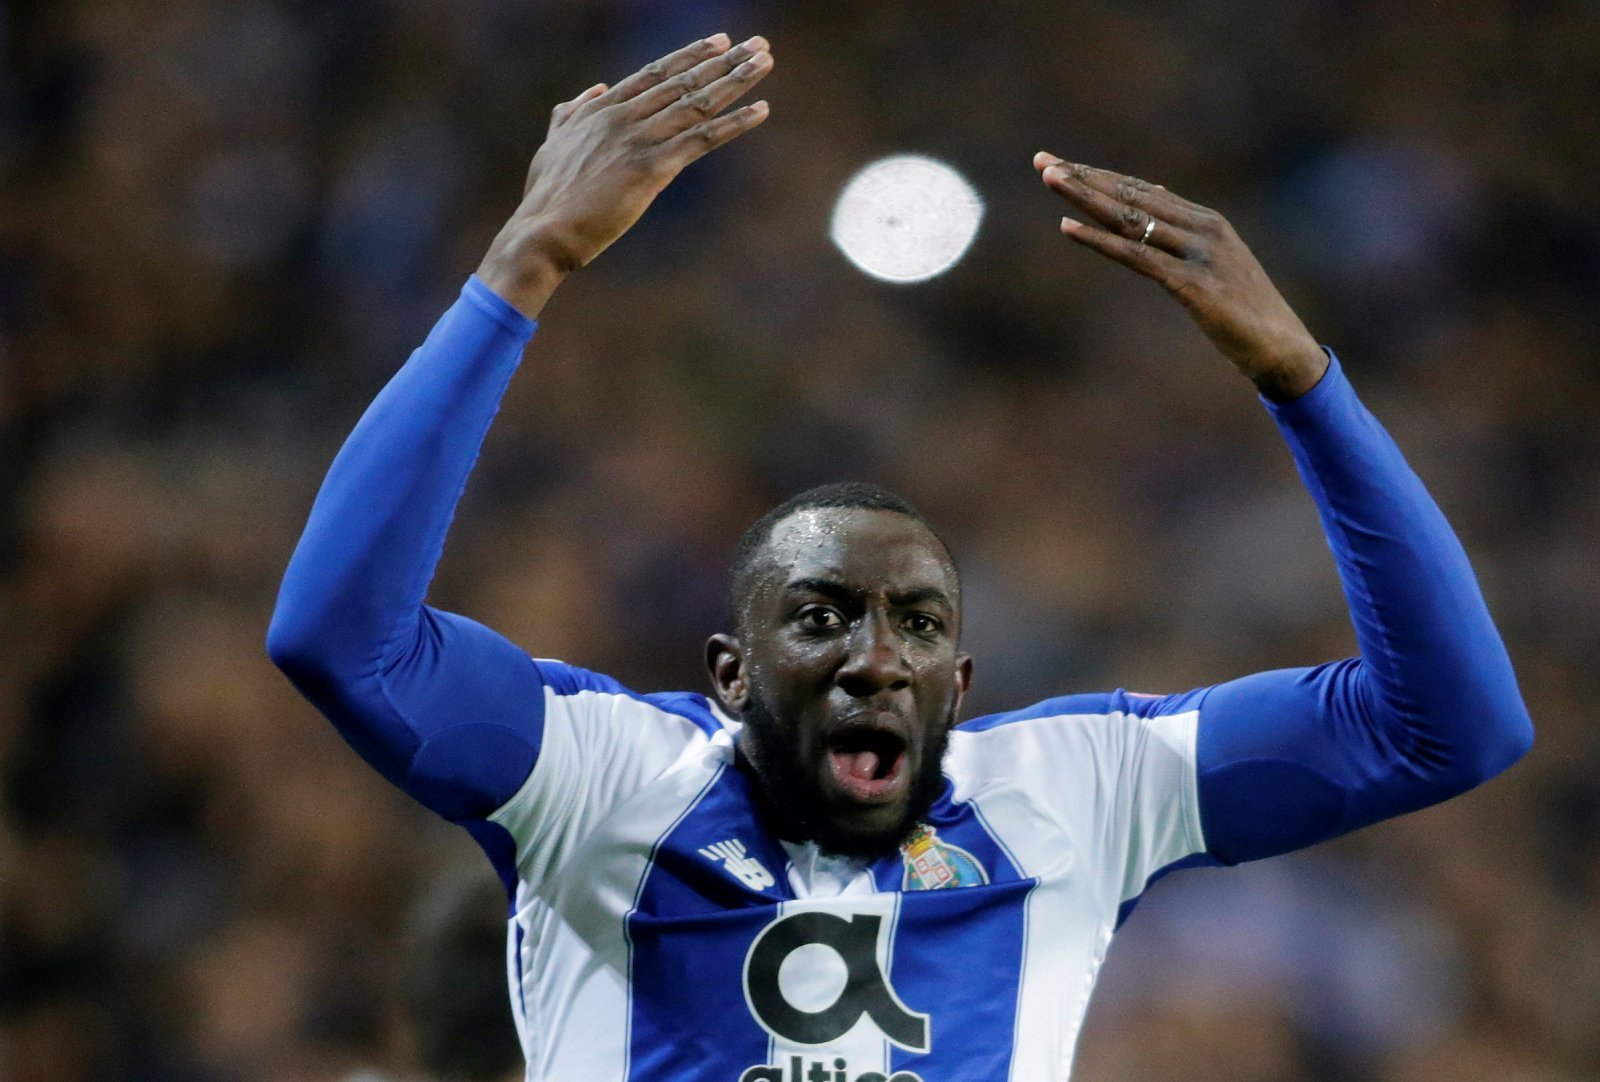 West Ham: If Callum Wilson is a no-go, Moussa Marega is a solid plan B